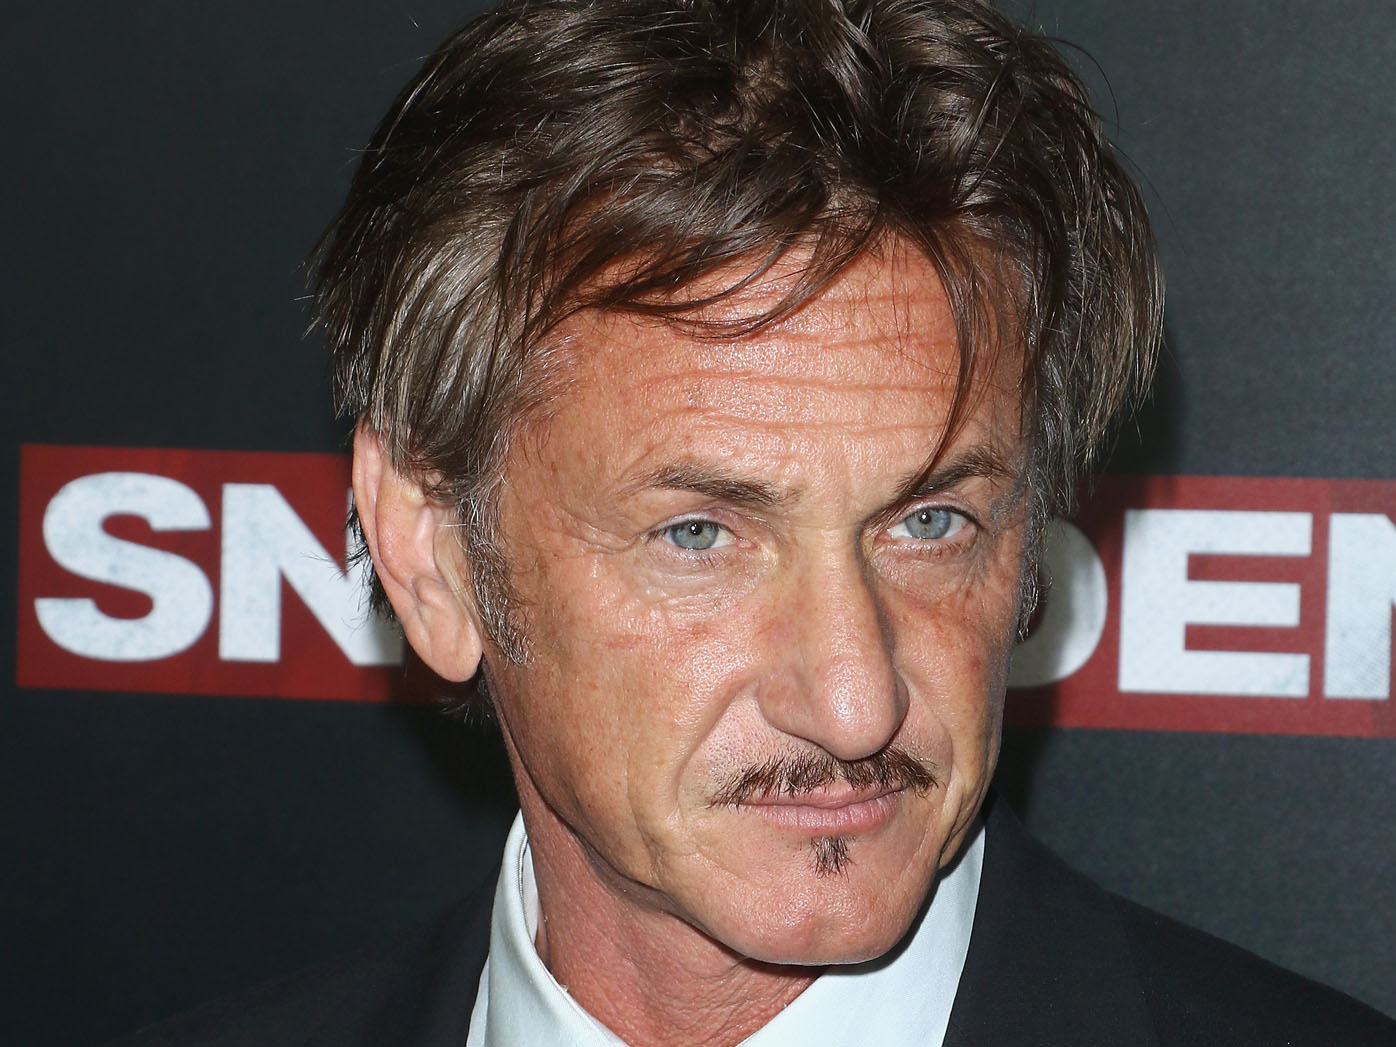 """Actor Sean Penn attends the """"Snowden"""" New York premiere at AMC Loews Lincoln Square on September 13, 2016 in New York City"""